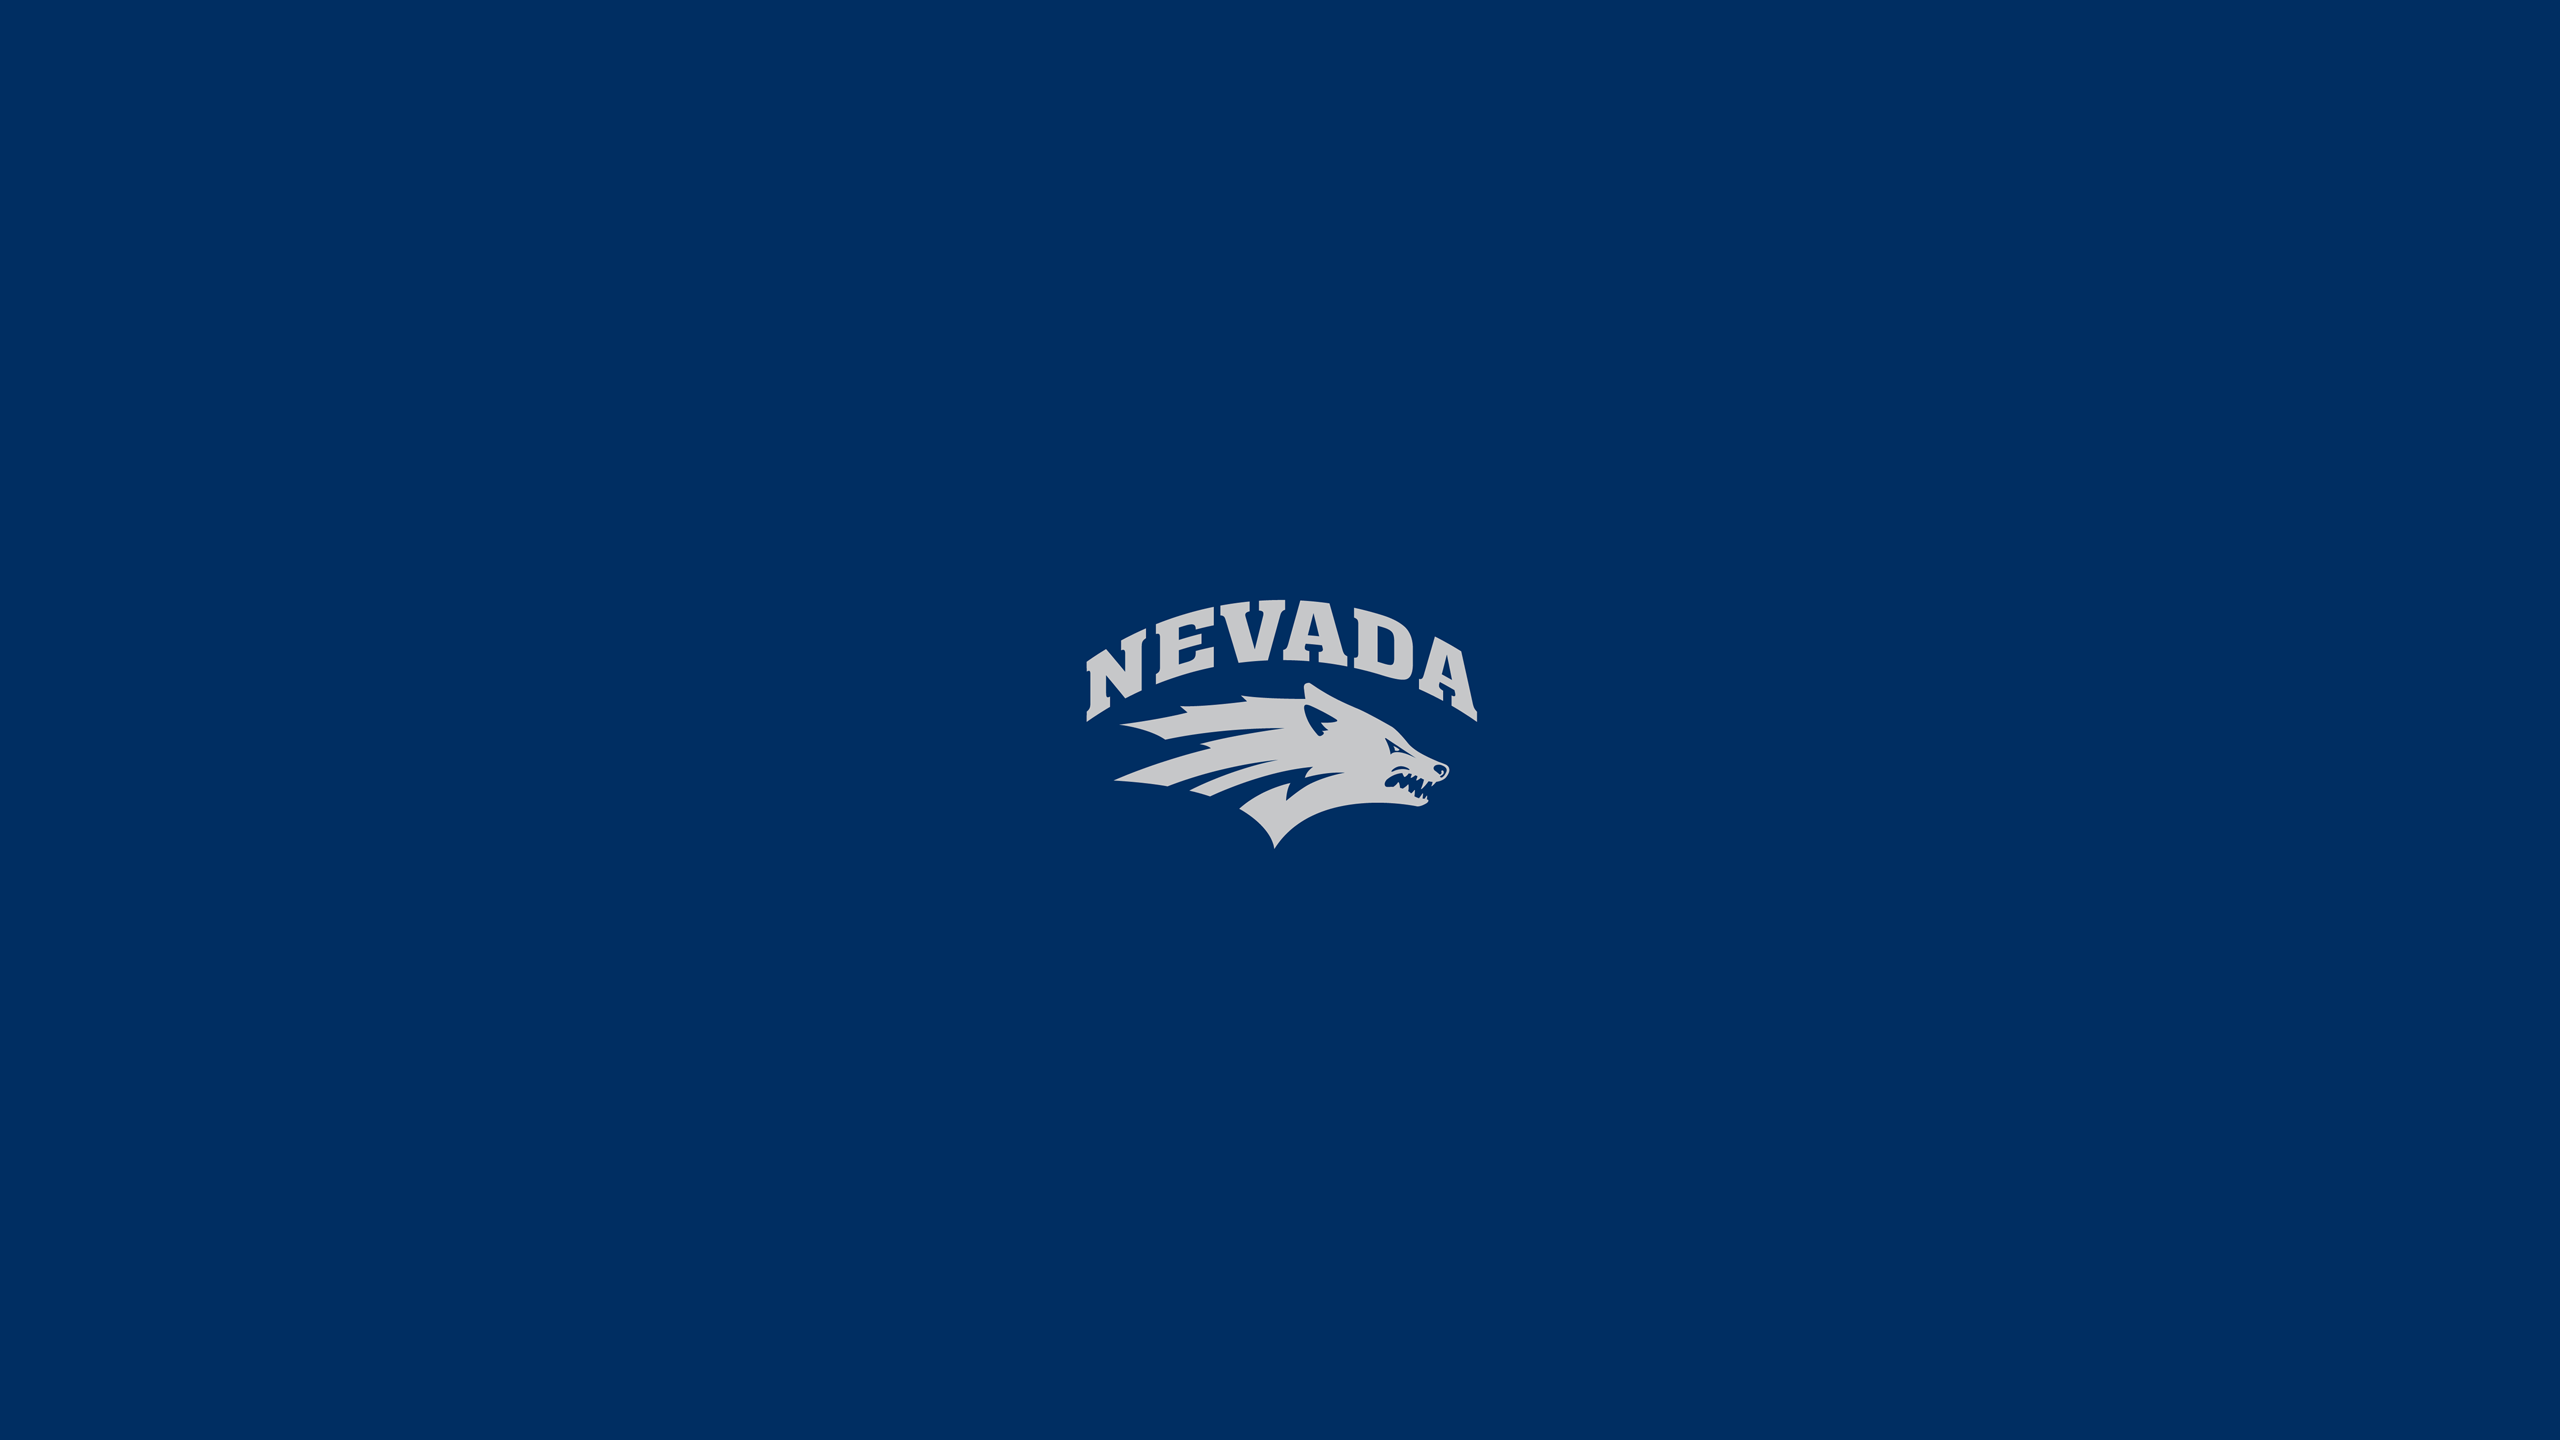 University of Nevada Wolfpack